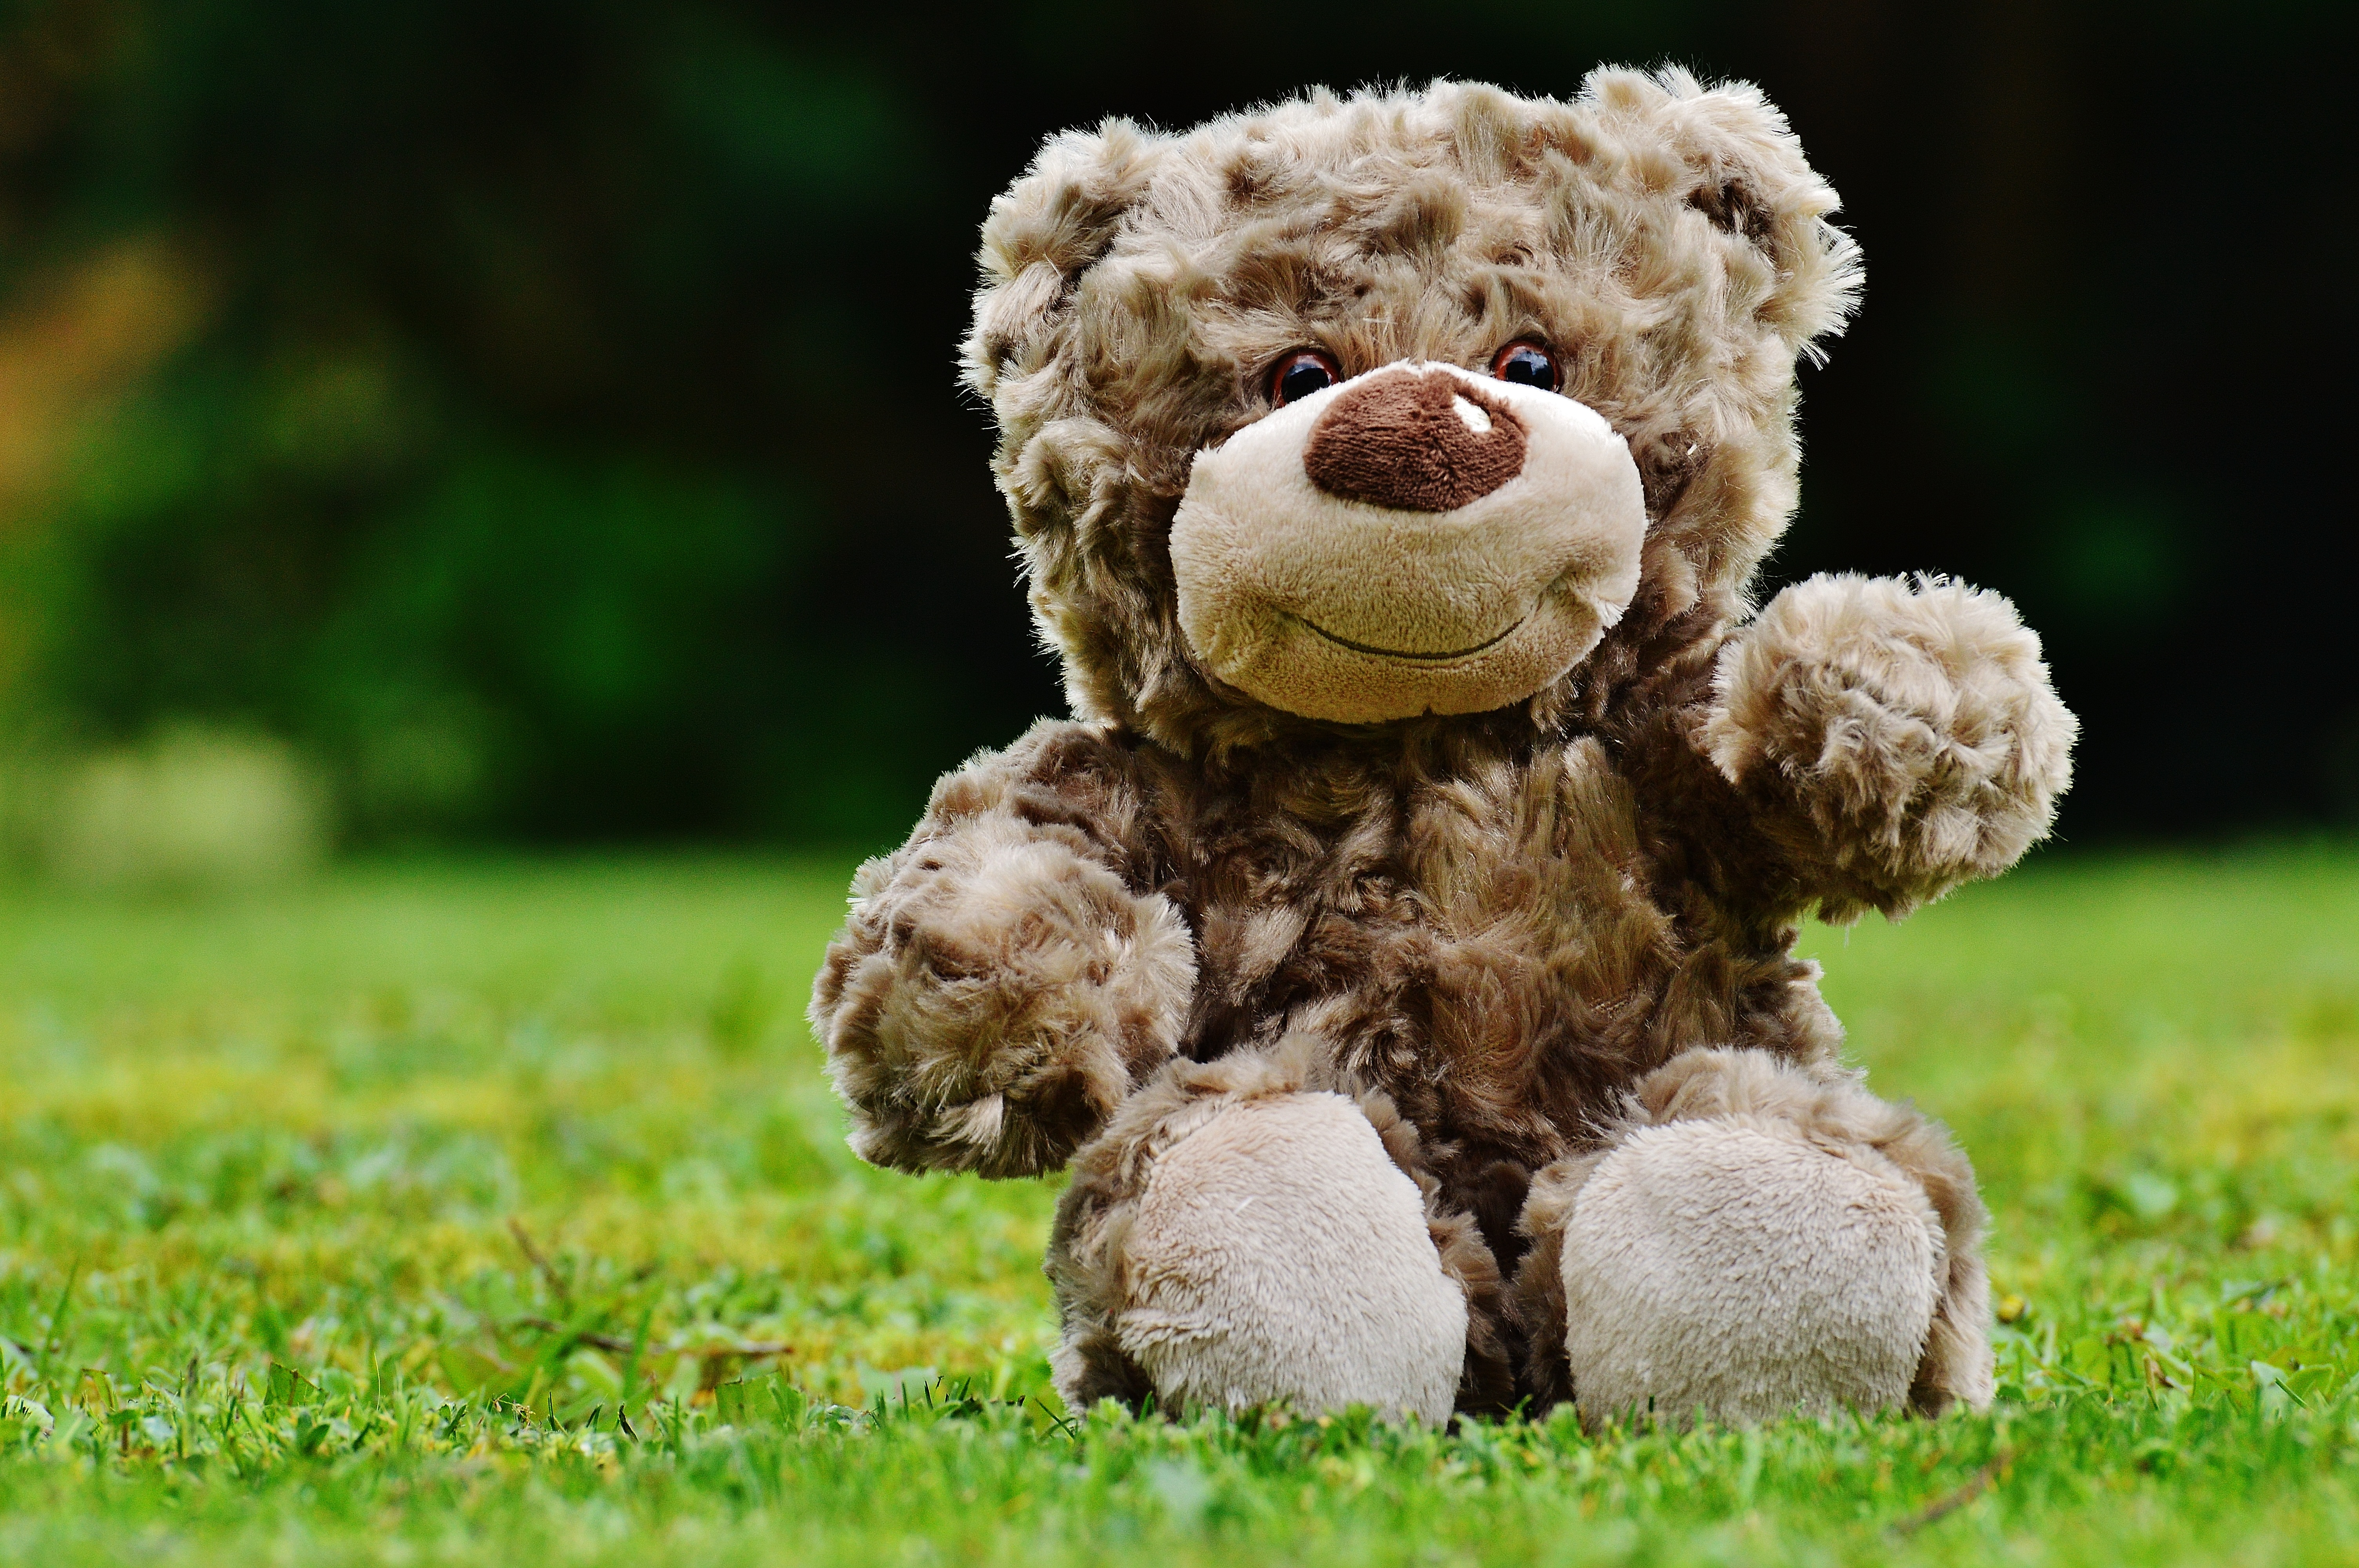 brown teddy bear sitting on grass free stock photo